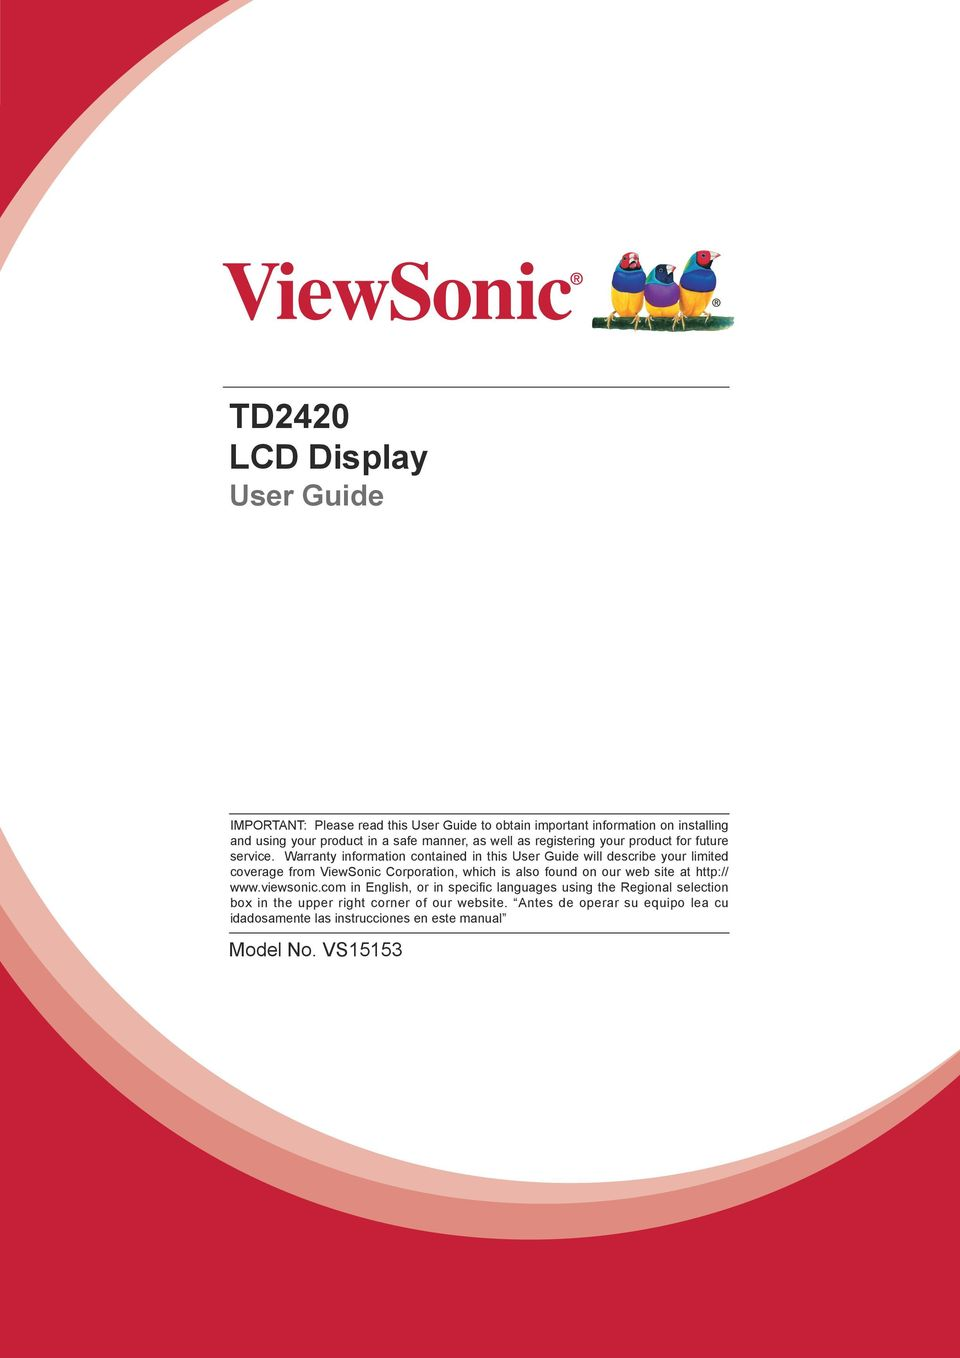 Warranty information contained in this User Guide will describe your limited coverage from ViewSonic Corporation, which is also found on our web site